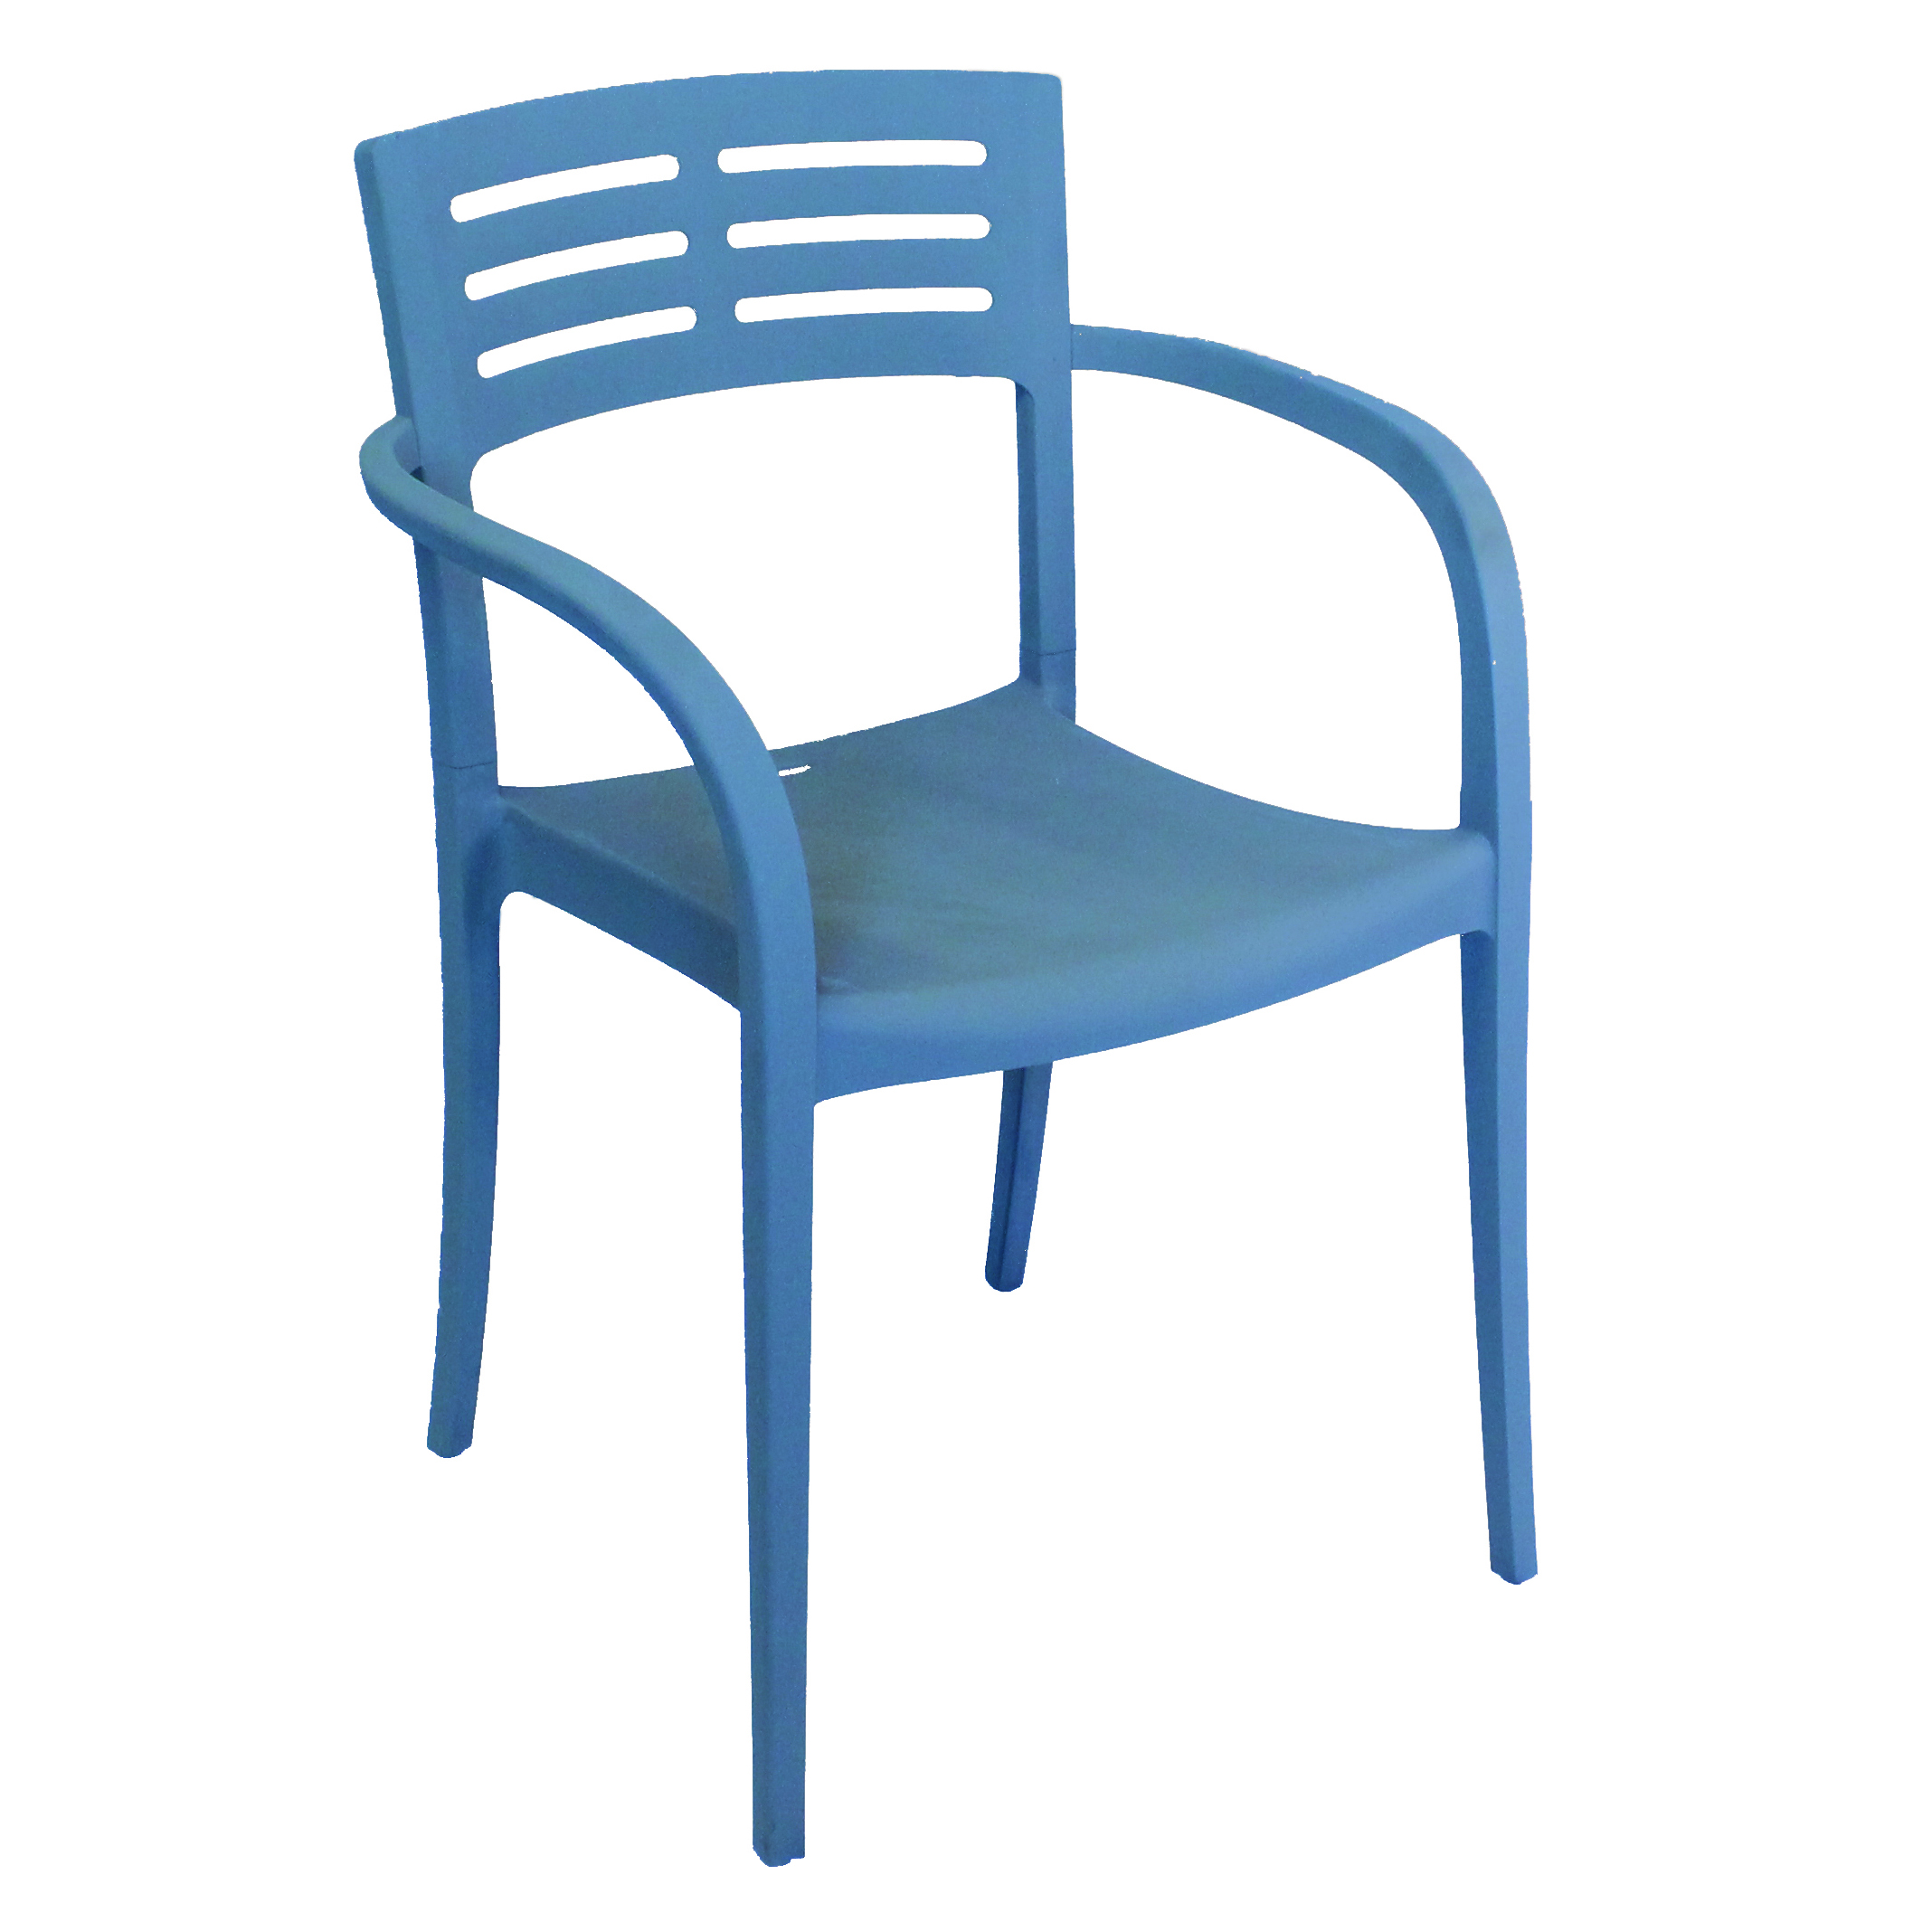 Grosfillex US336680 chair, armchair, stacking, outdoor